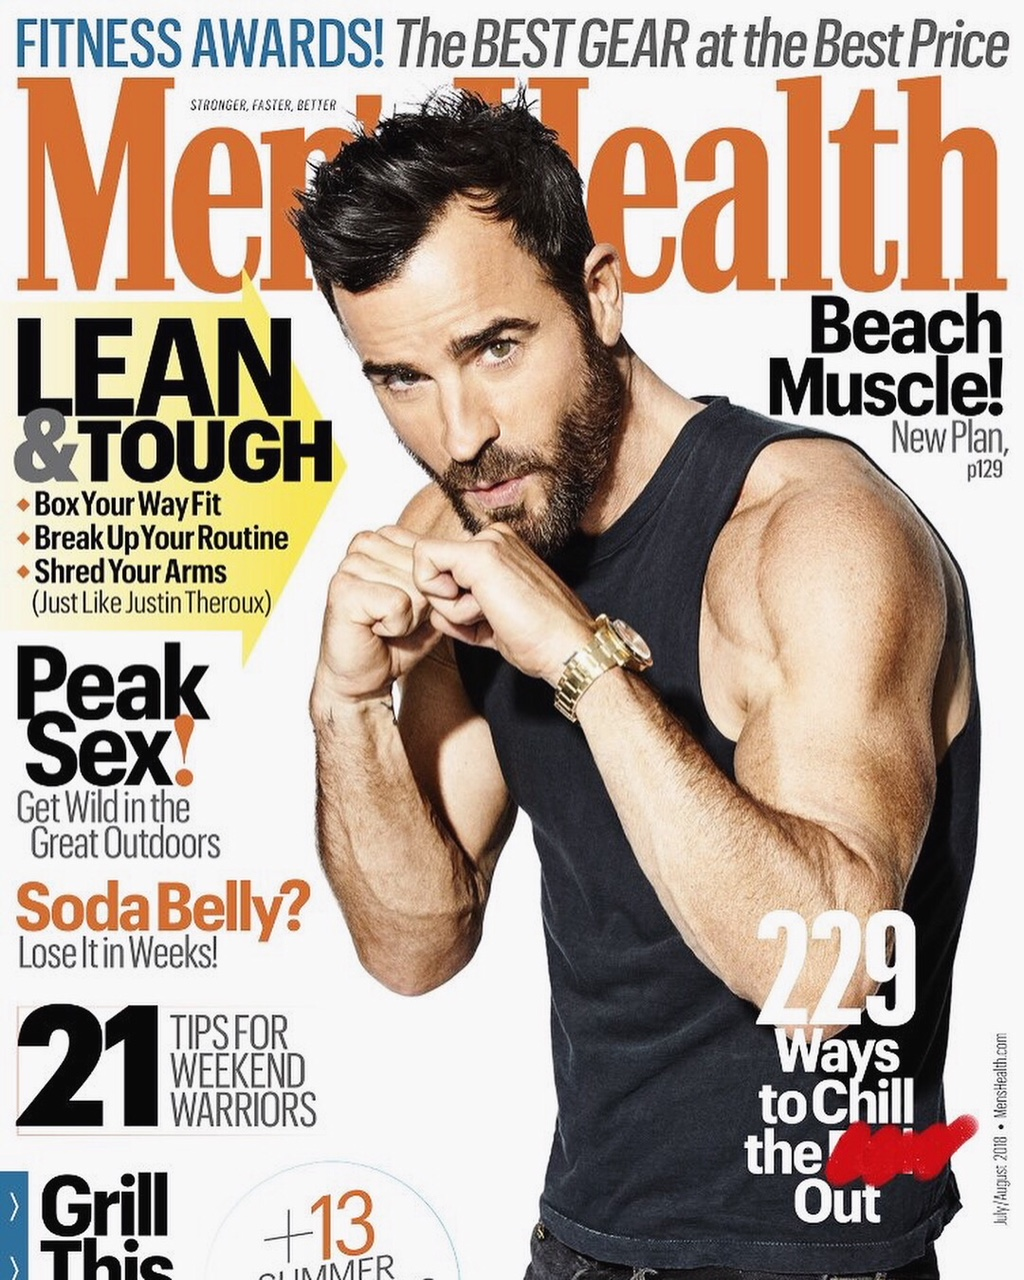 The 2018 July/August issue of Men's Health featuring Ultimate Hoops